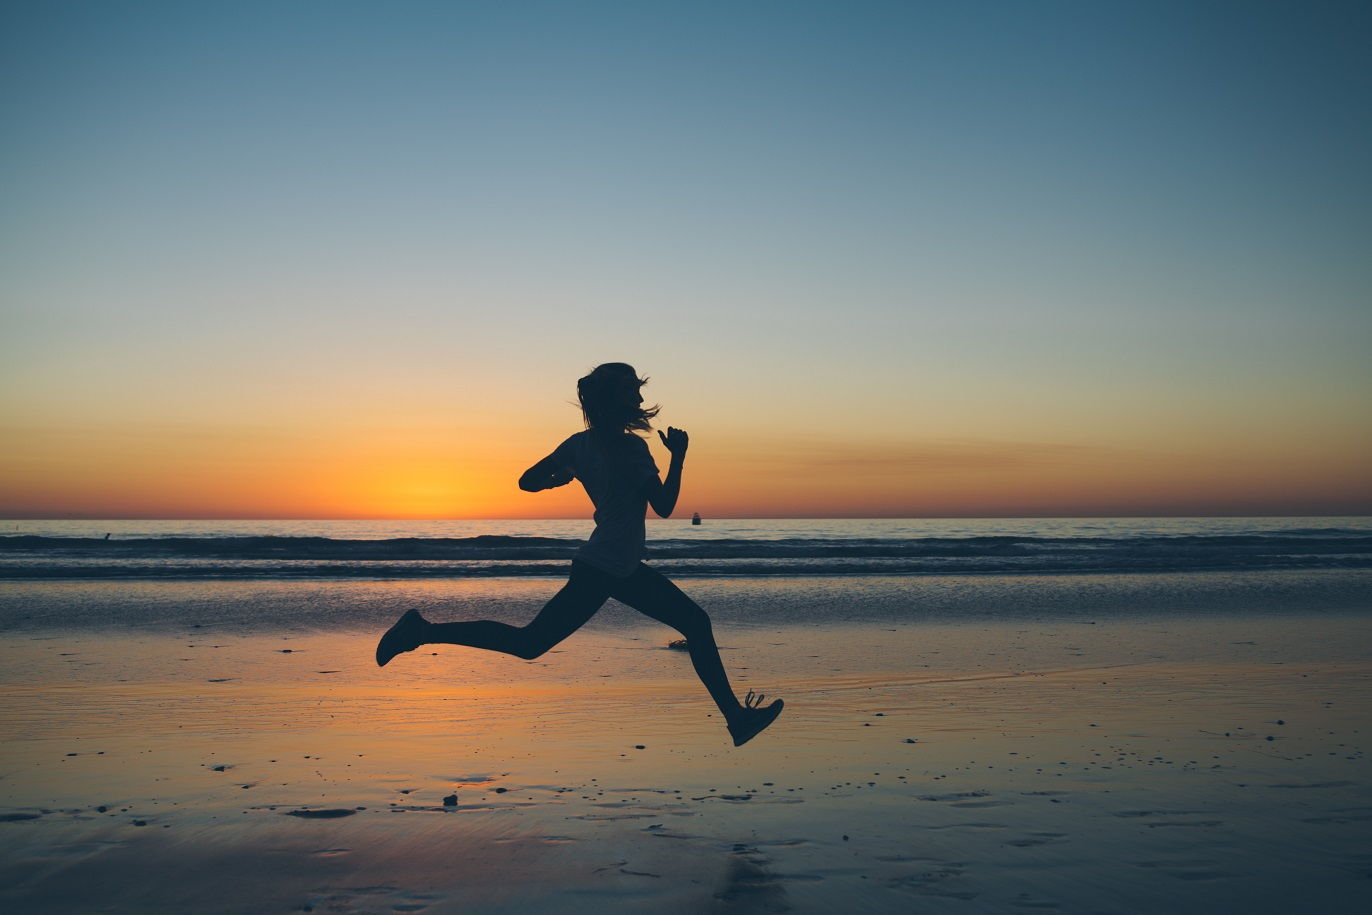 Fit Athlete: Best Practices to Getting Fit